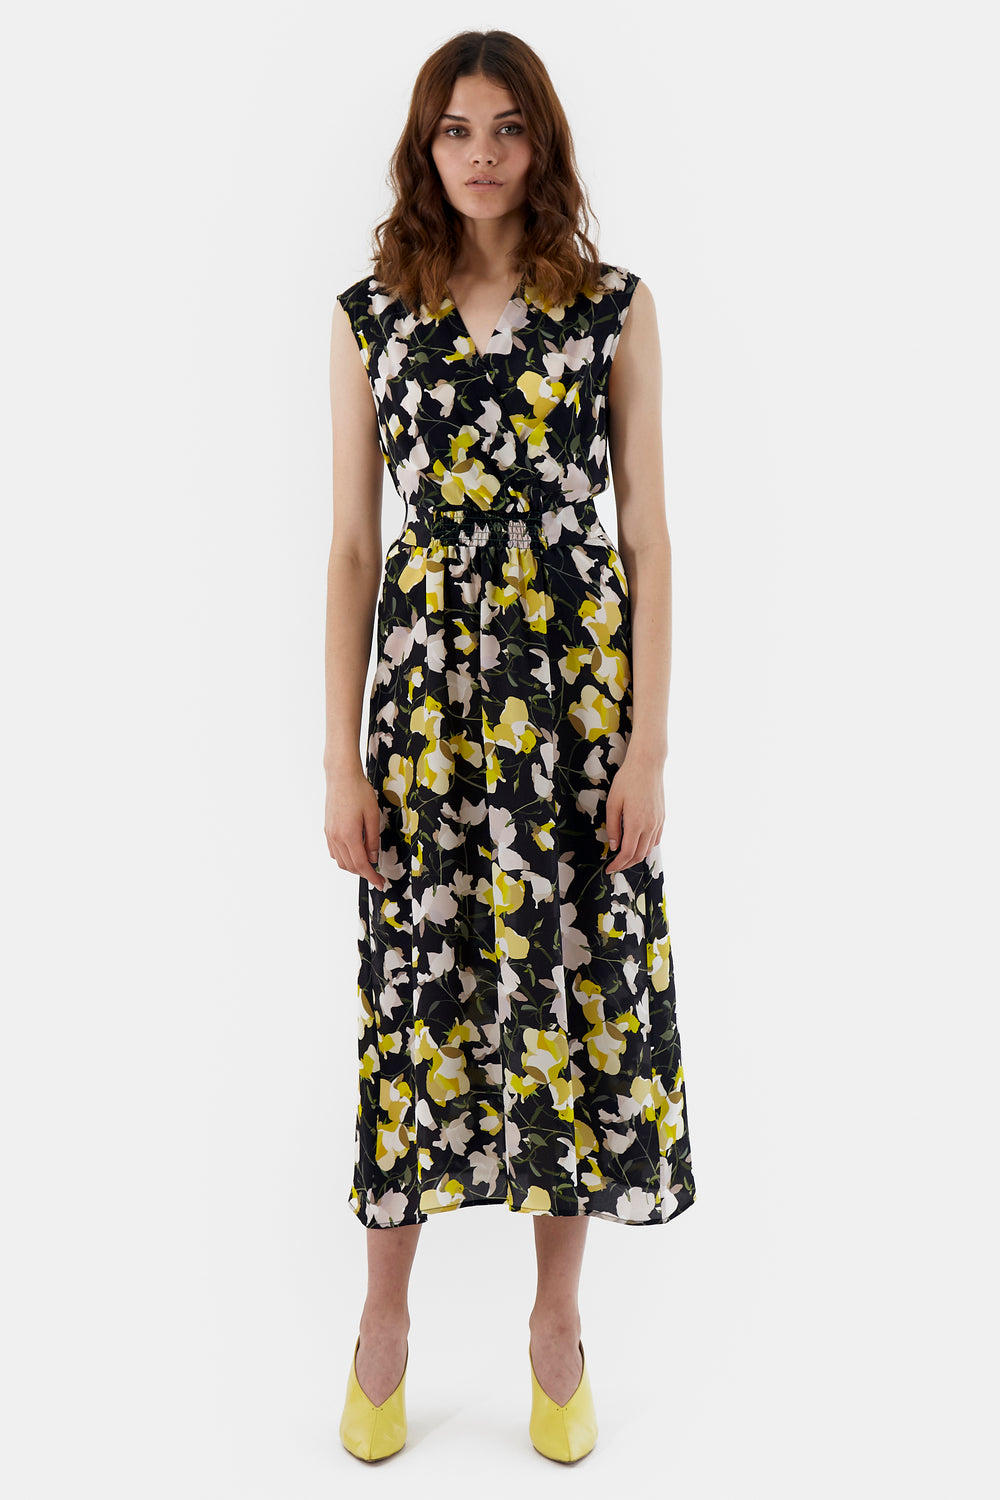 Roselie Sleeveless Dress